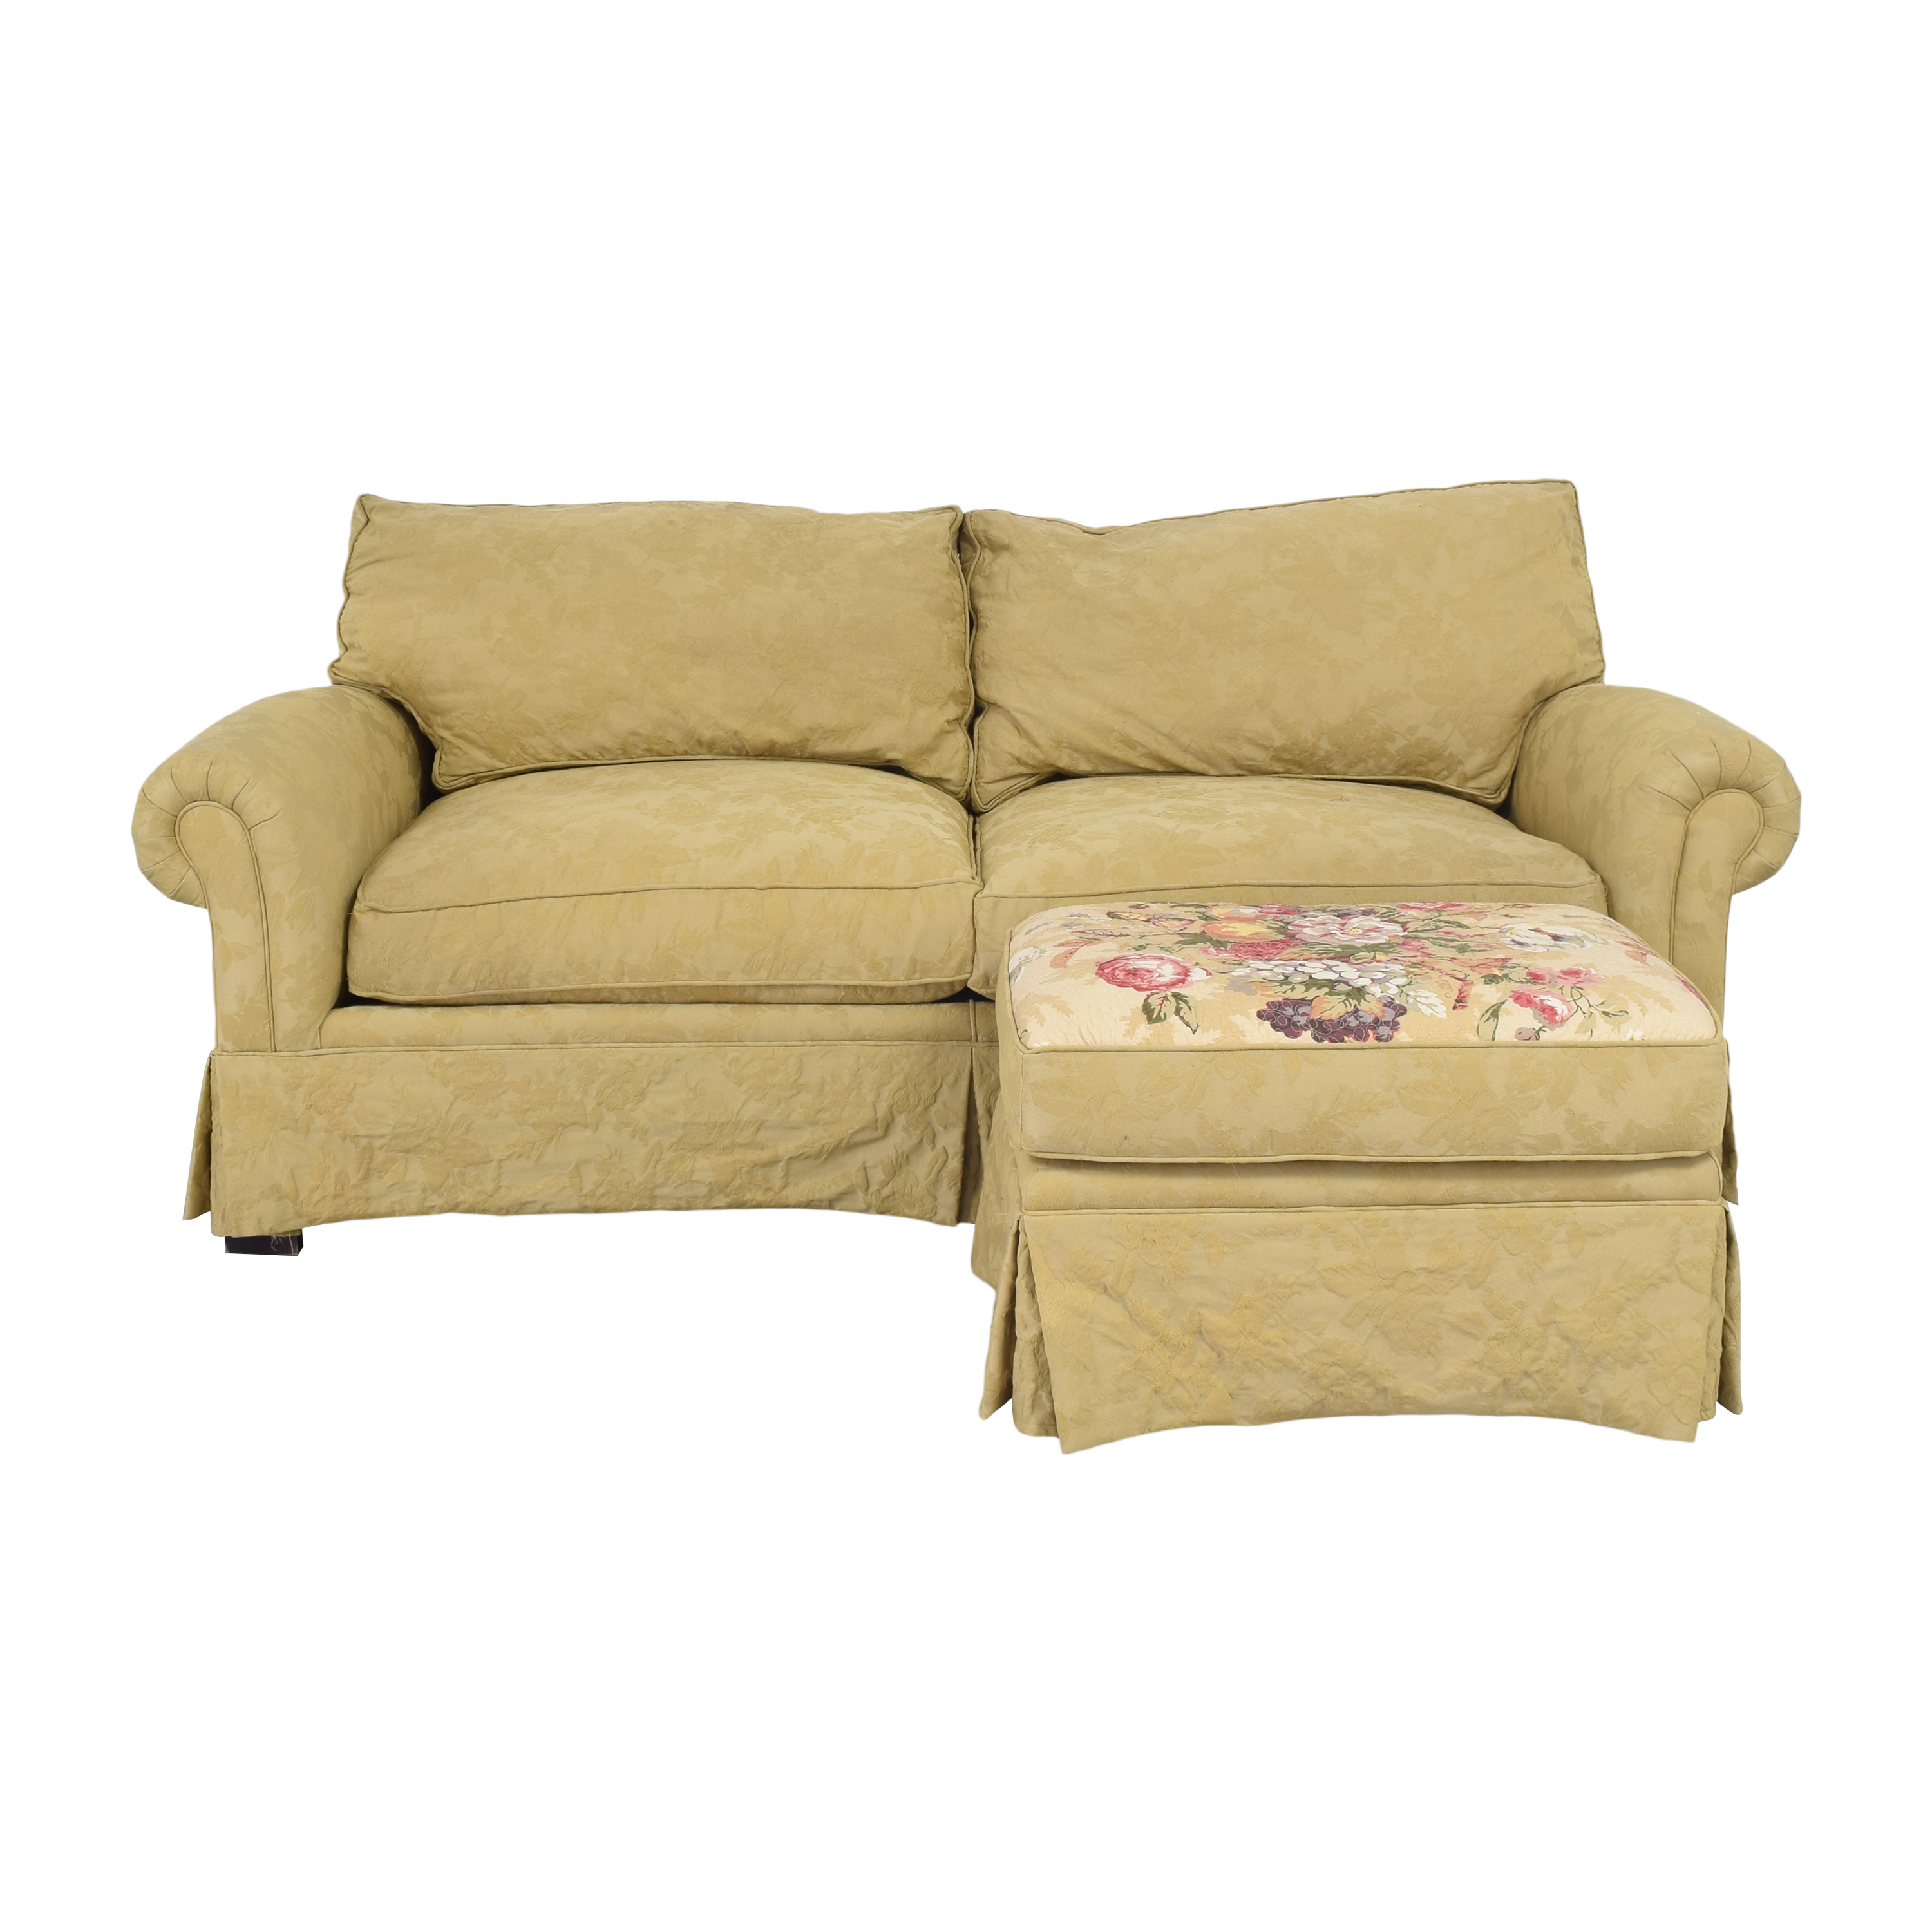 buy Domain Home Domain Home Covent Garden Sofa with Ottoman online